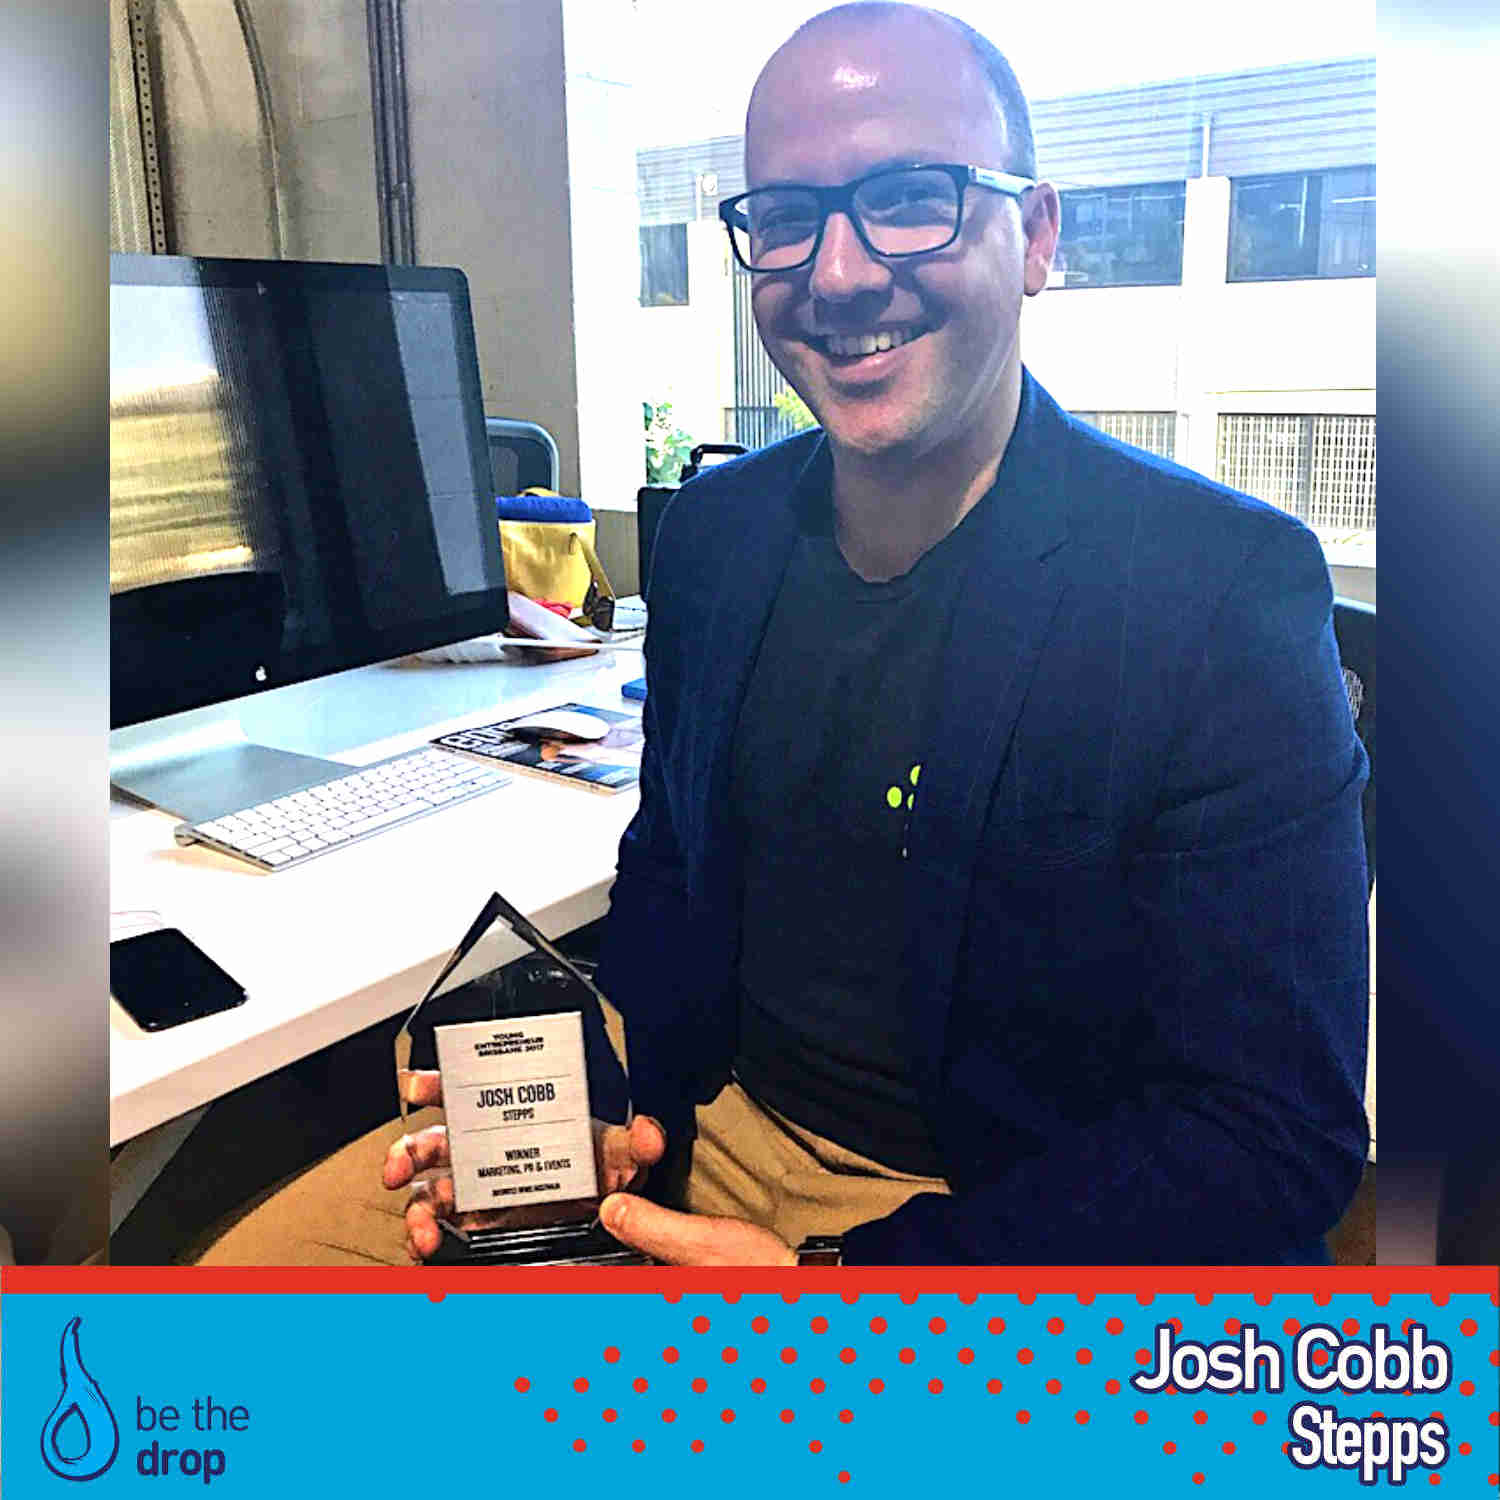 Josh Cobb Provides His Insights On How To Build A Business